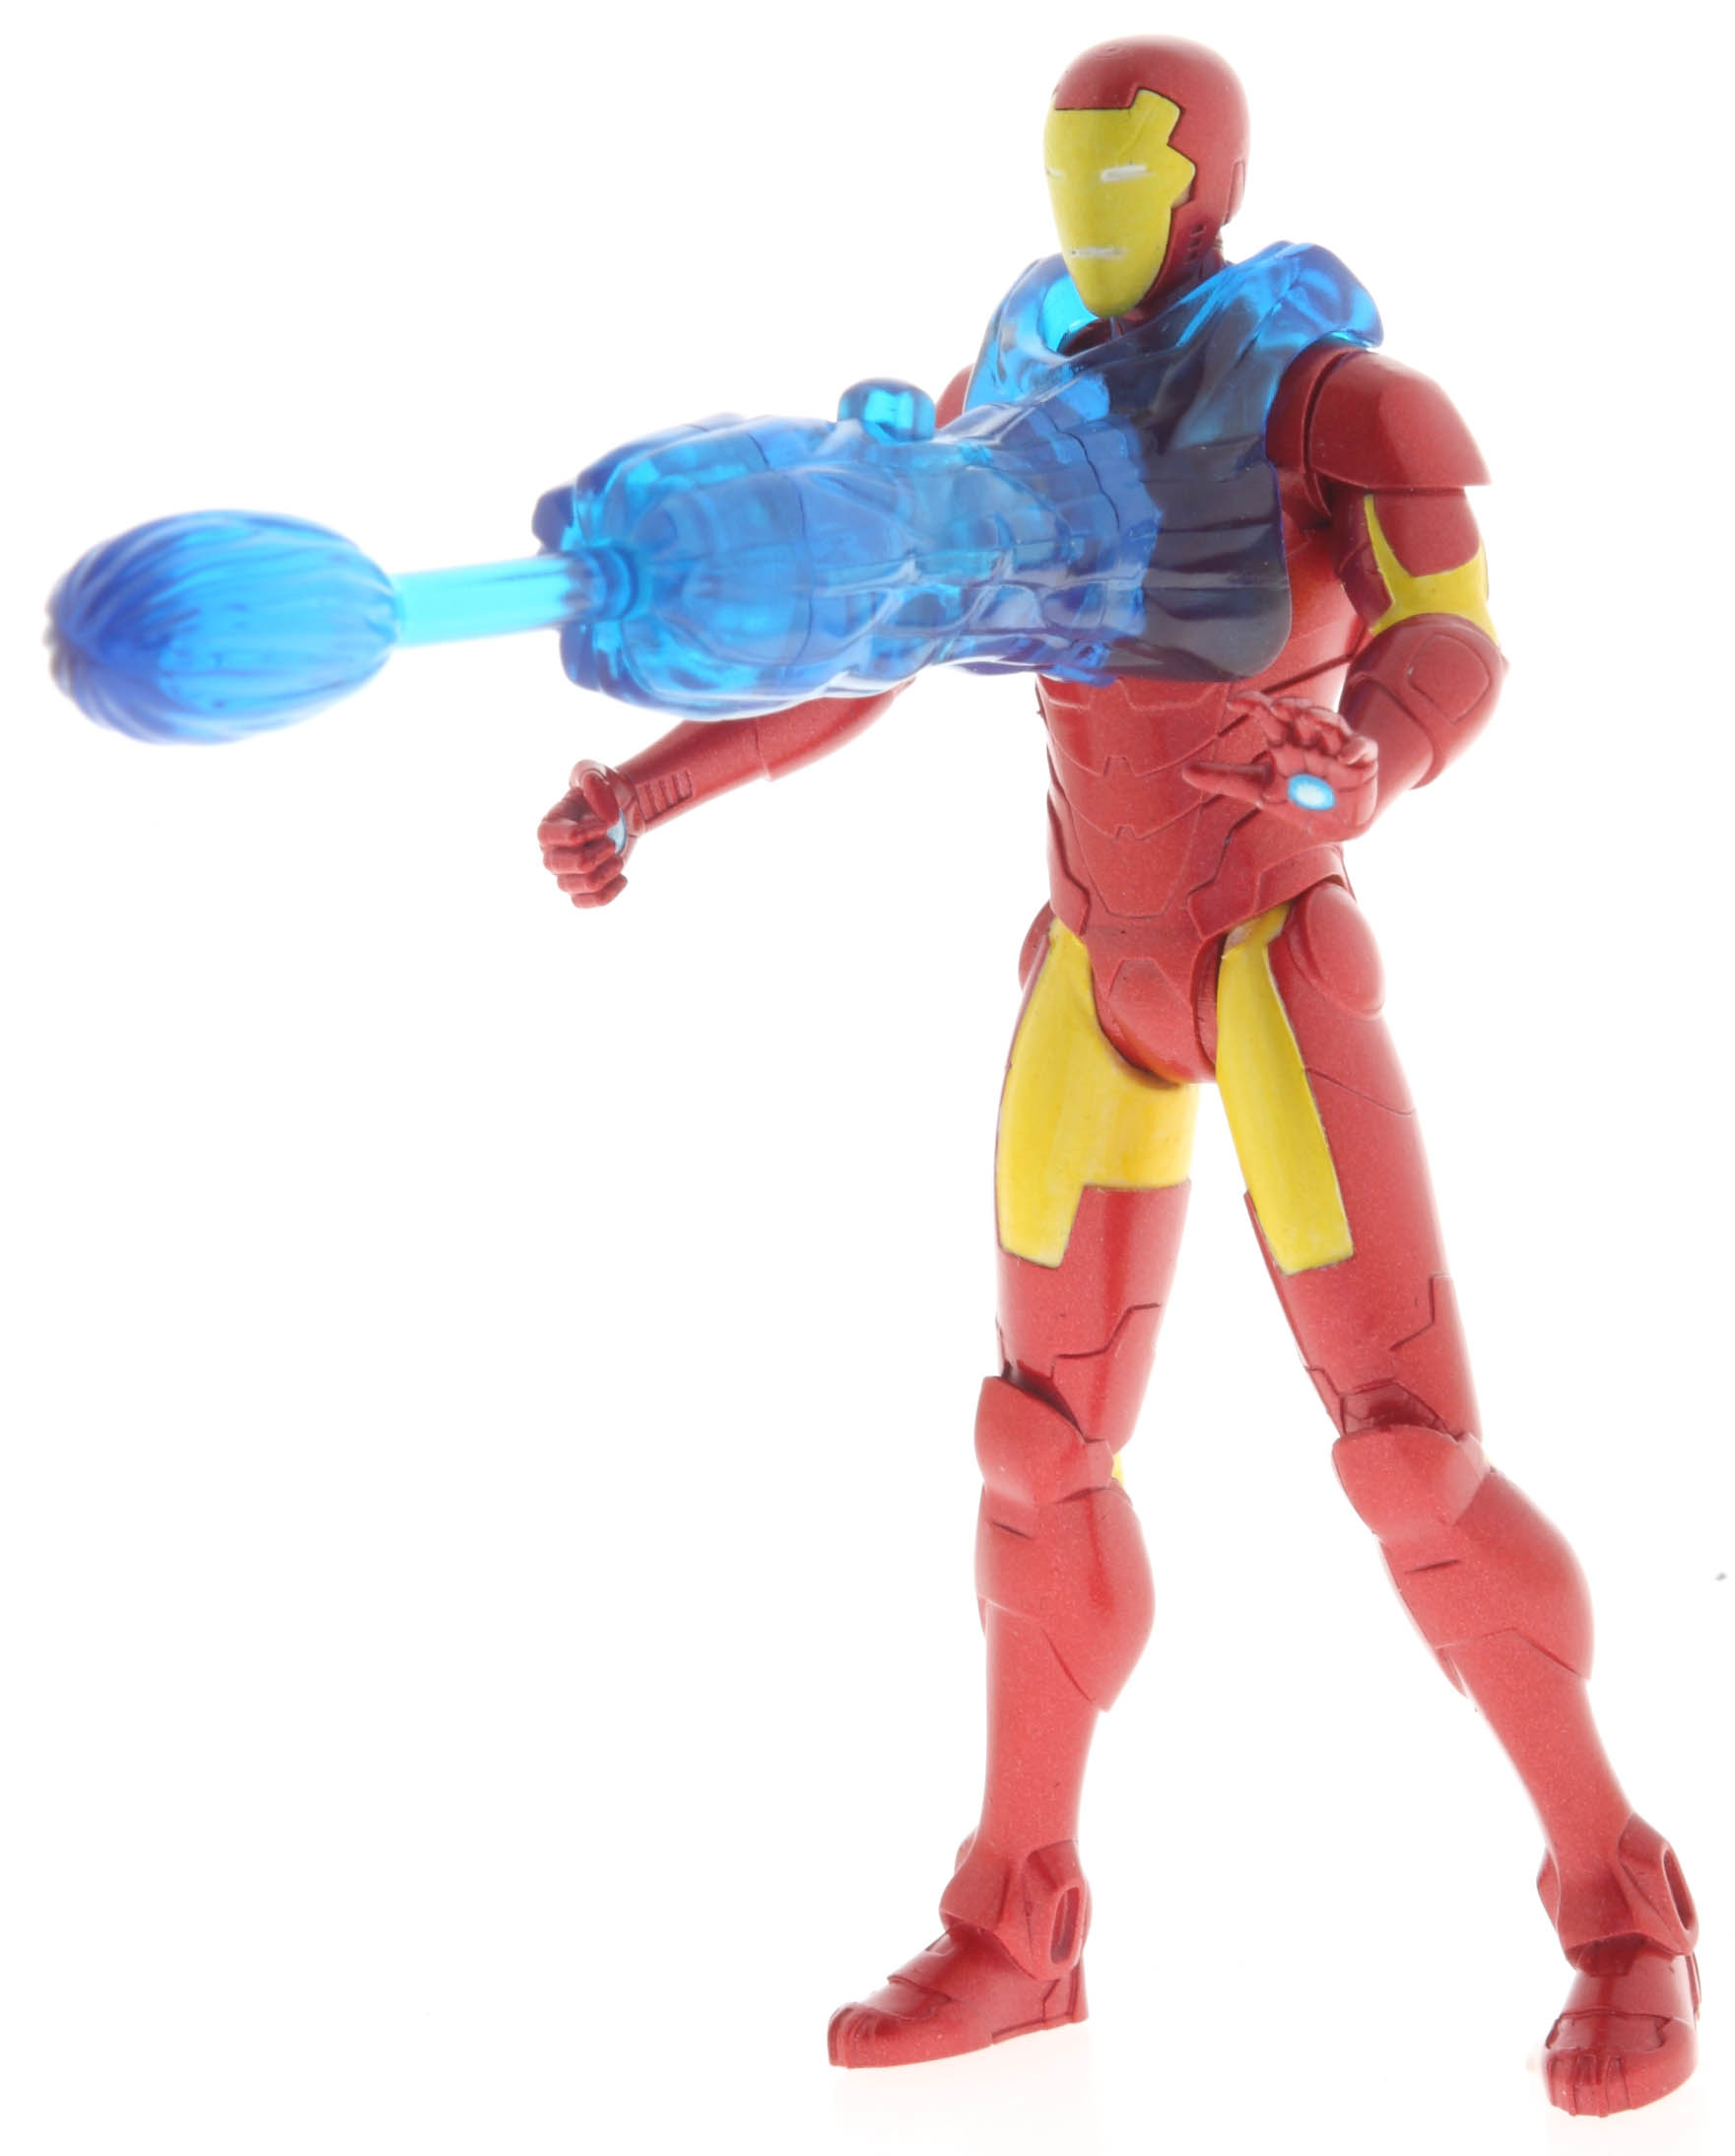 marvel iron man animated quick change iron man ... a month you can't beat the erotic art coming out of this site…